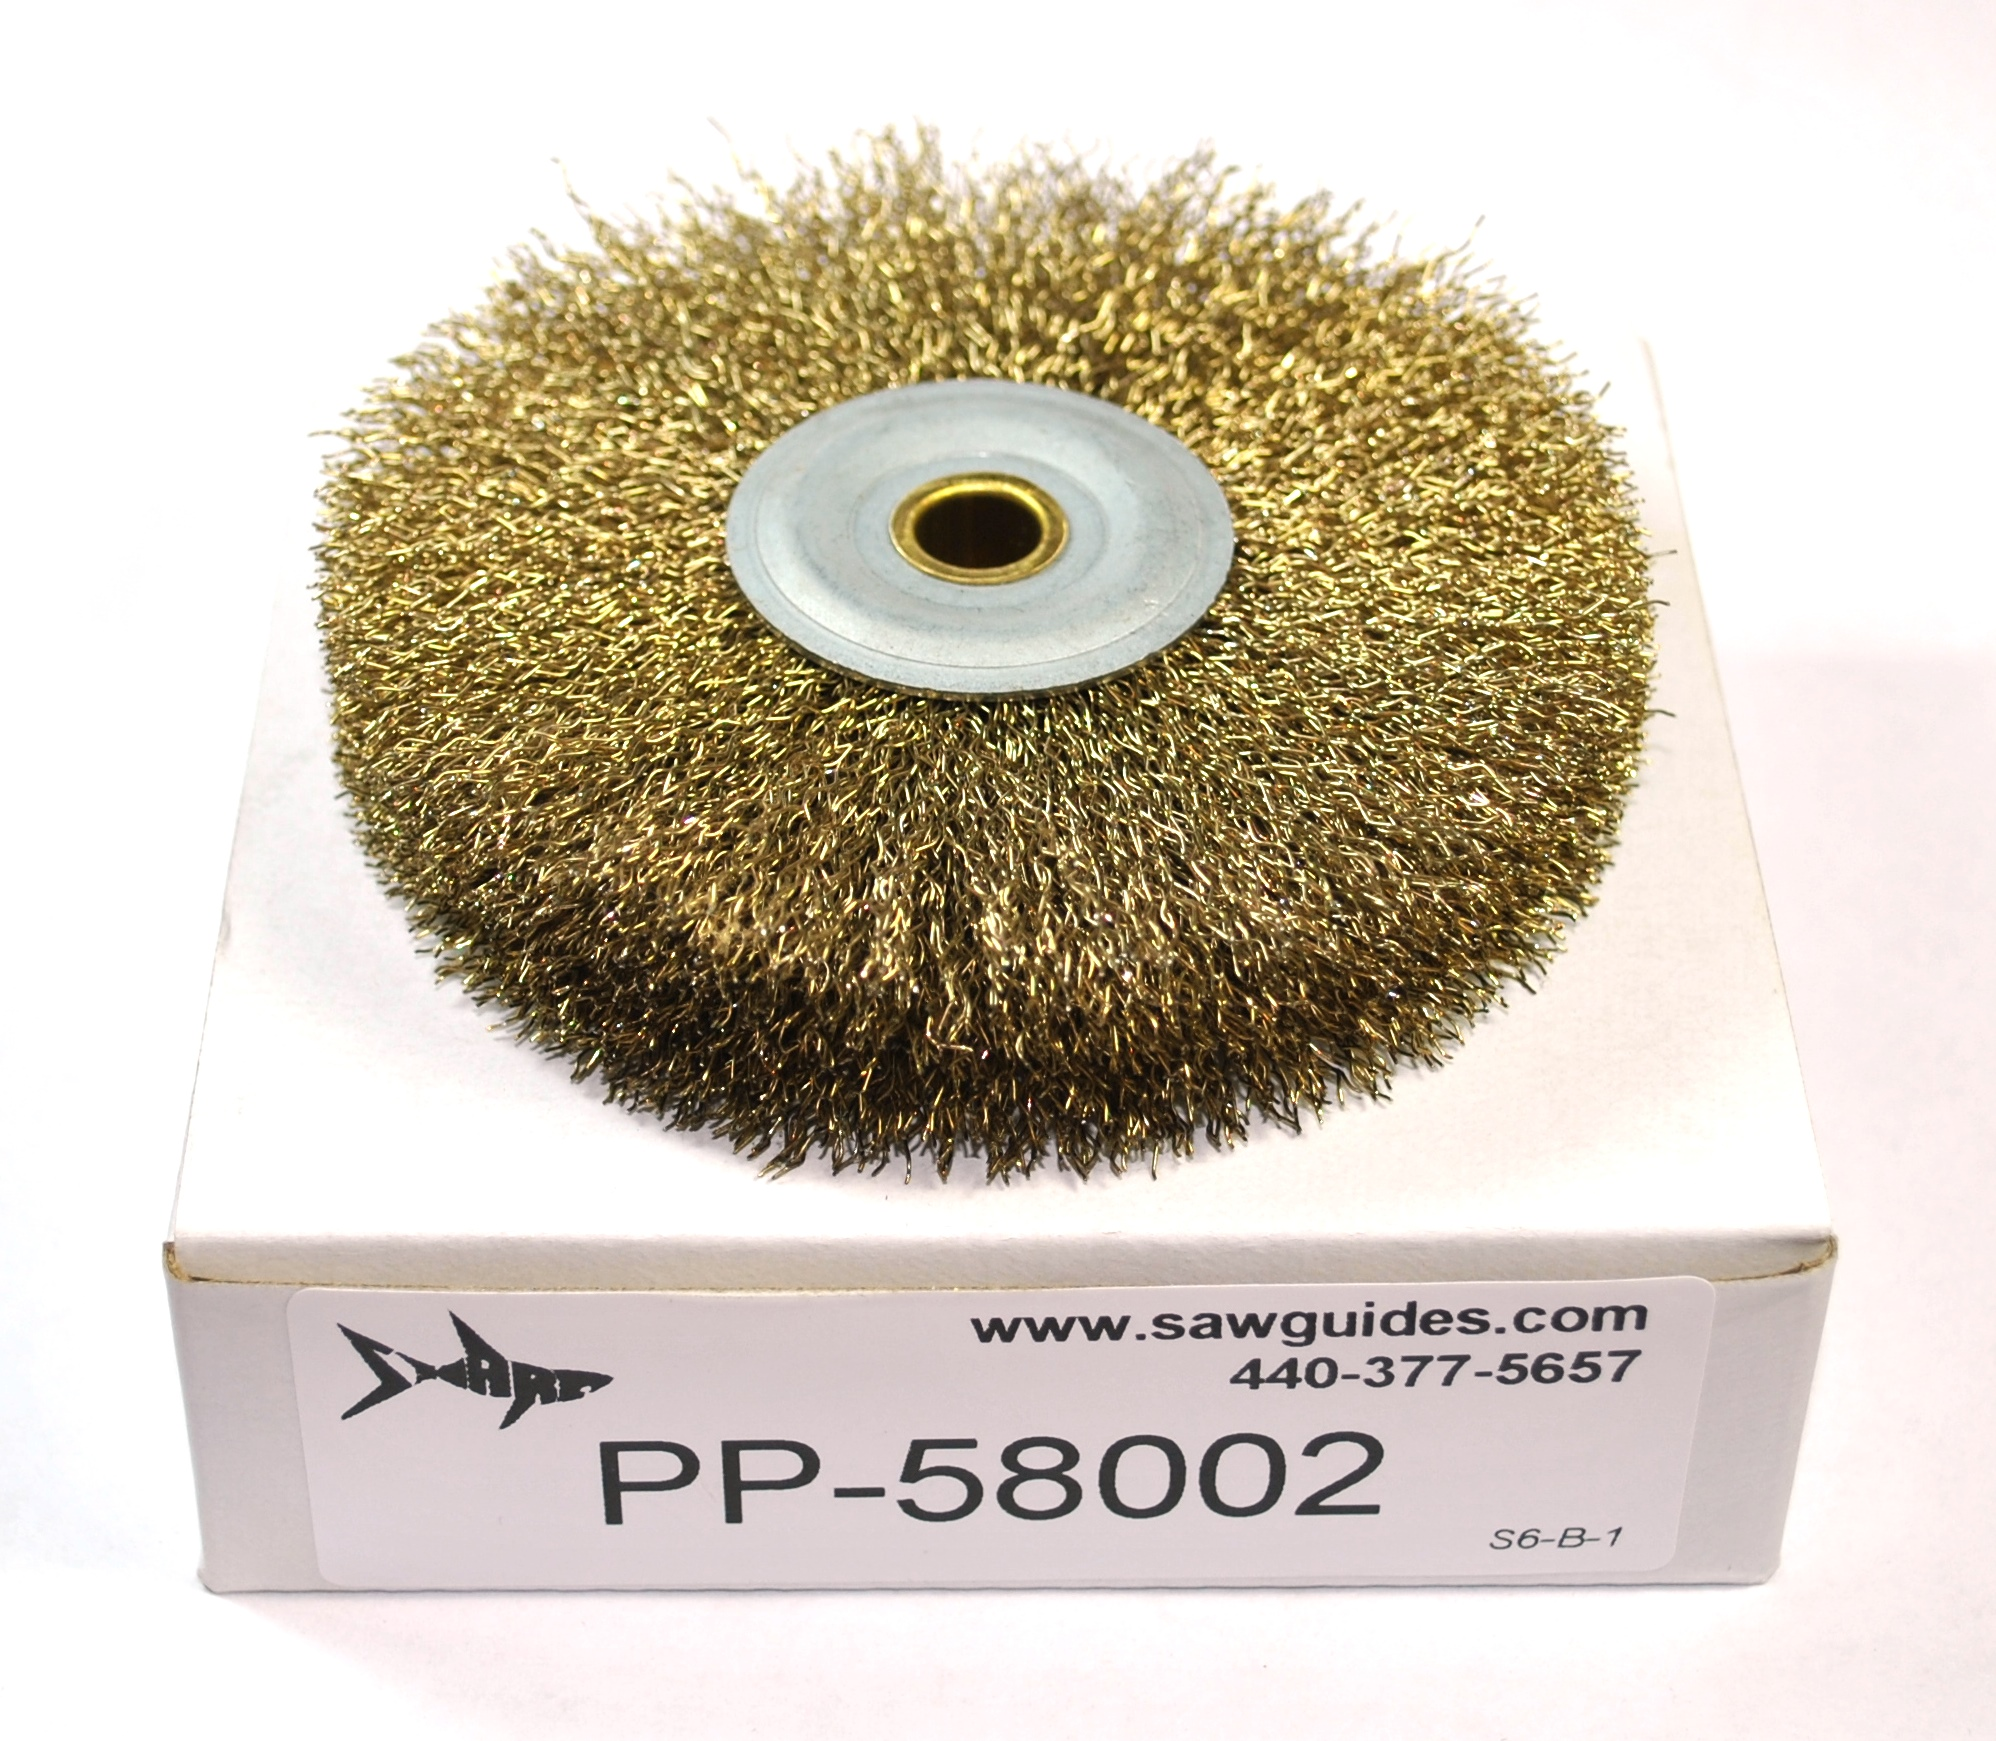 PP-58002 Blade Brush for Cosen & Clausing Saws